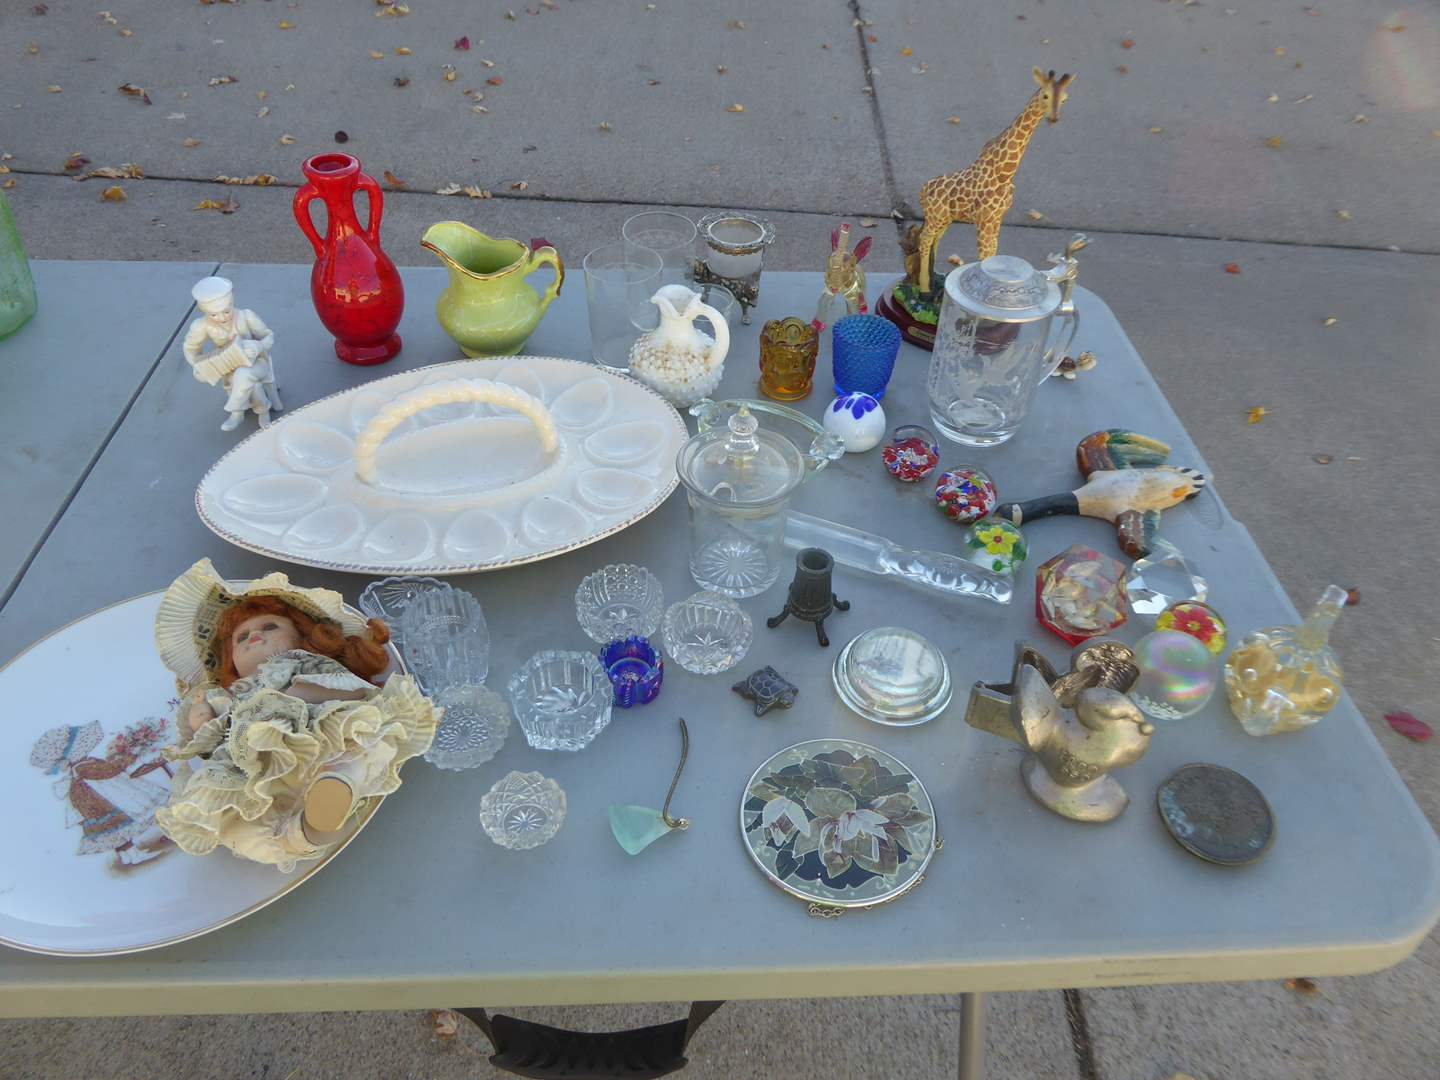 Lot # 31 - Eppelsheimer Pewter Mold, Glass Paper Weights, Figurines & More  (main image)